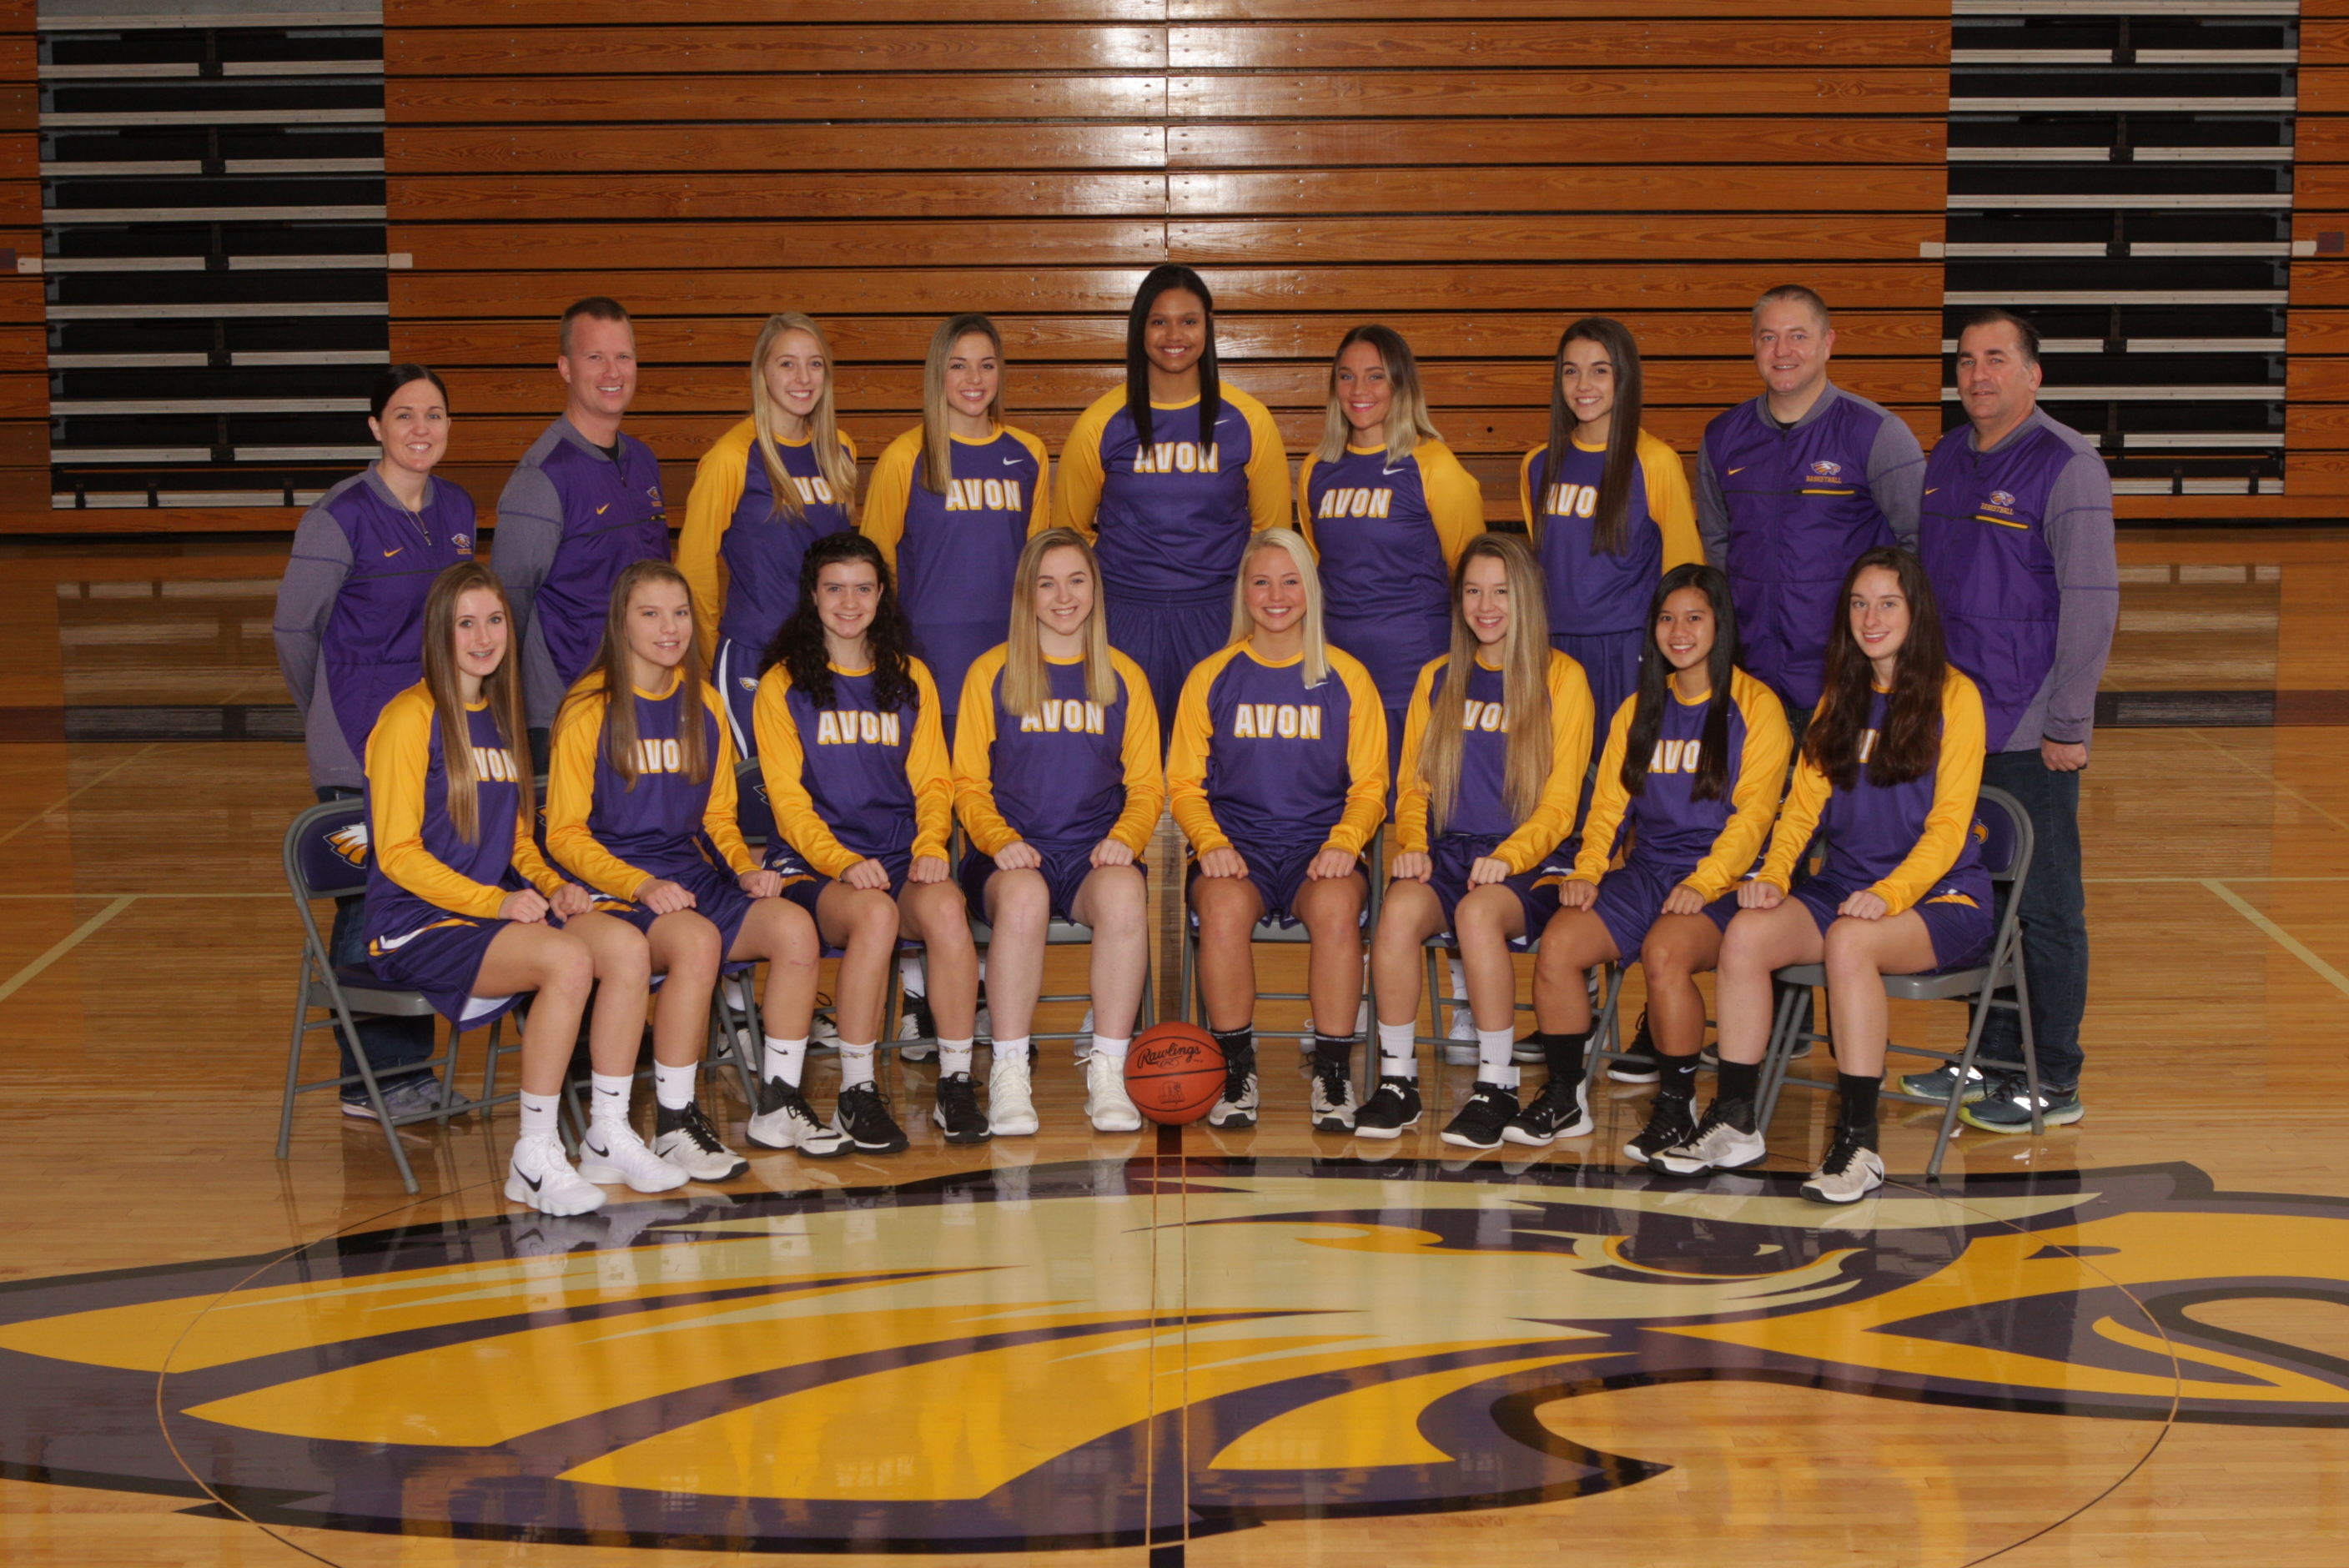 Girls Basketball Avon Athletics